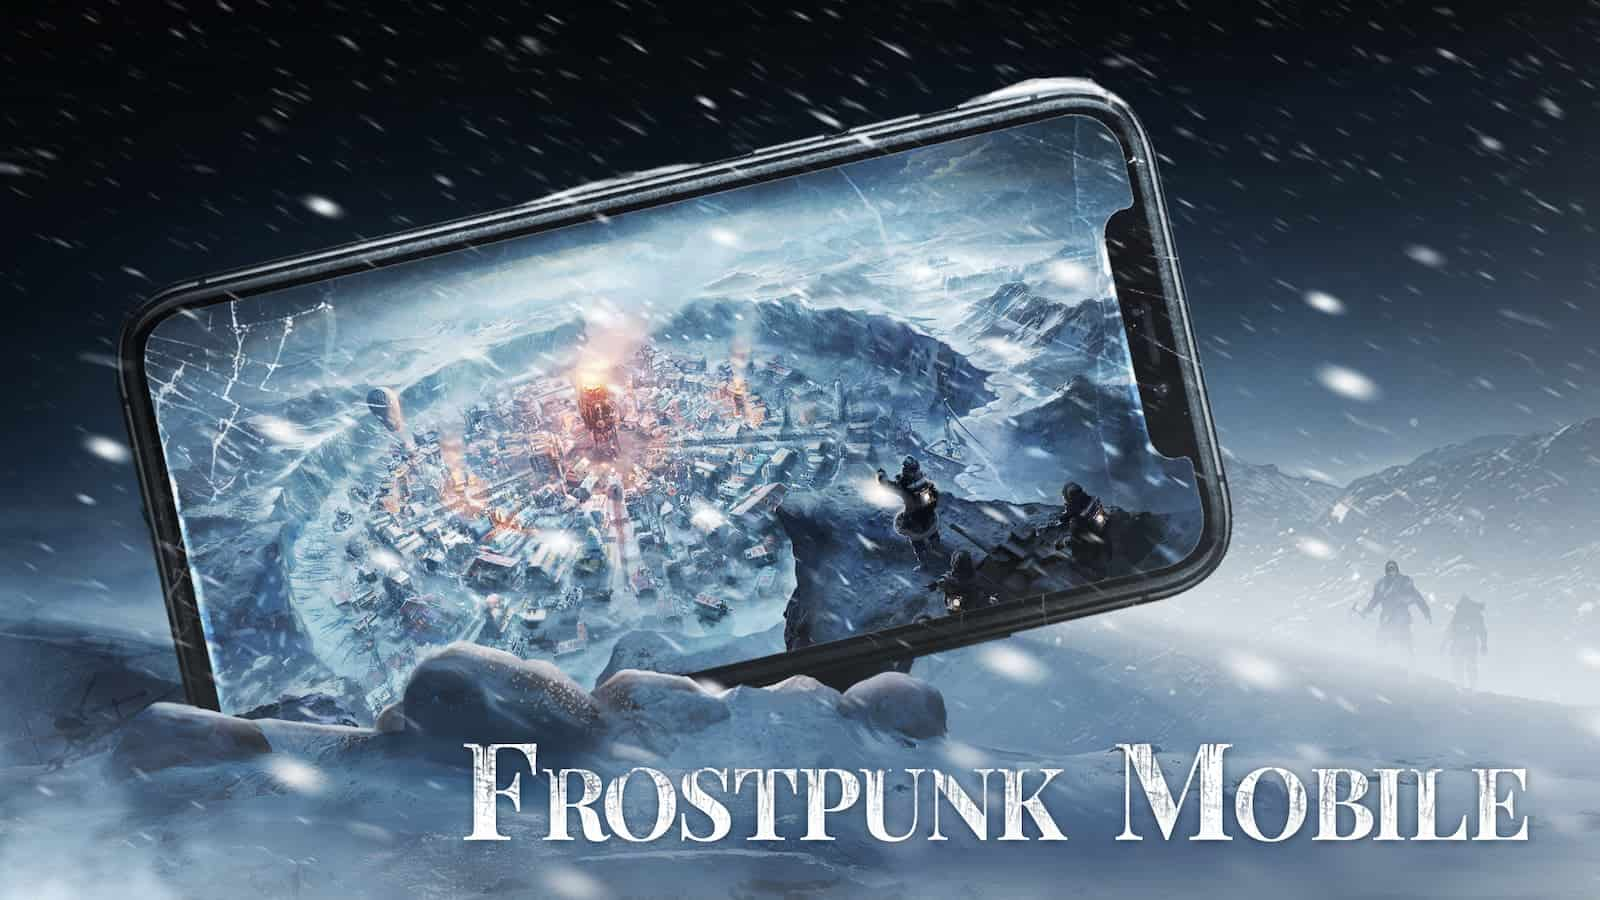 Critically acclaimed Frostpunk gets Android version